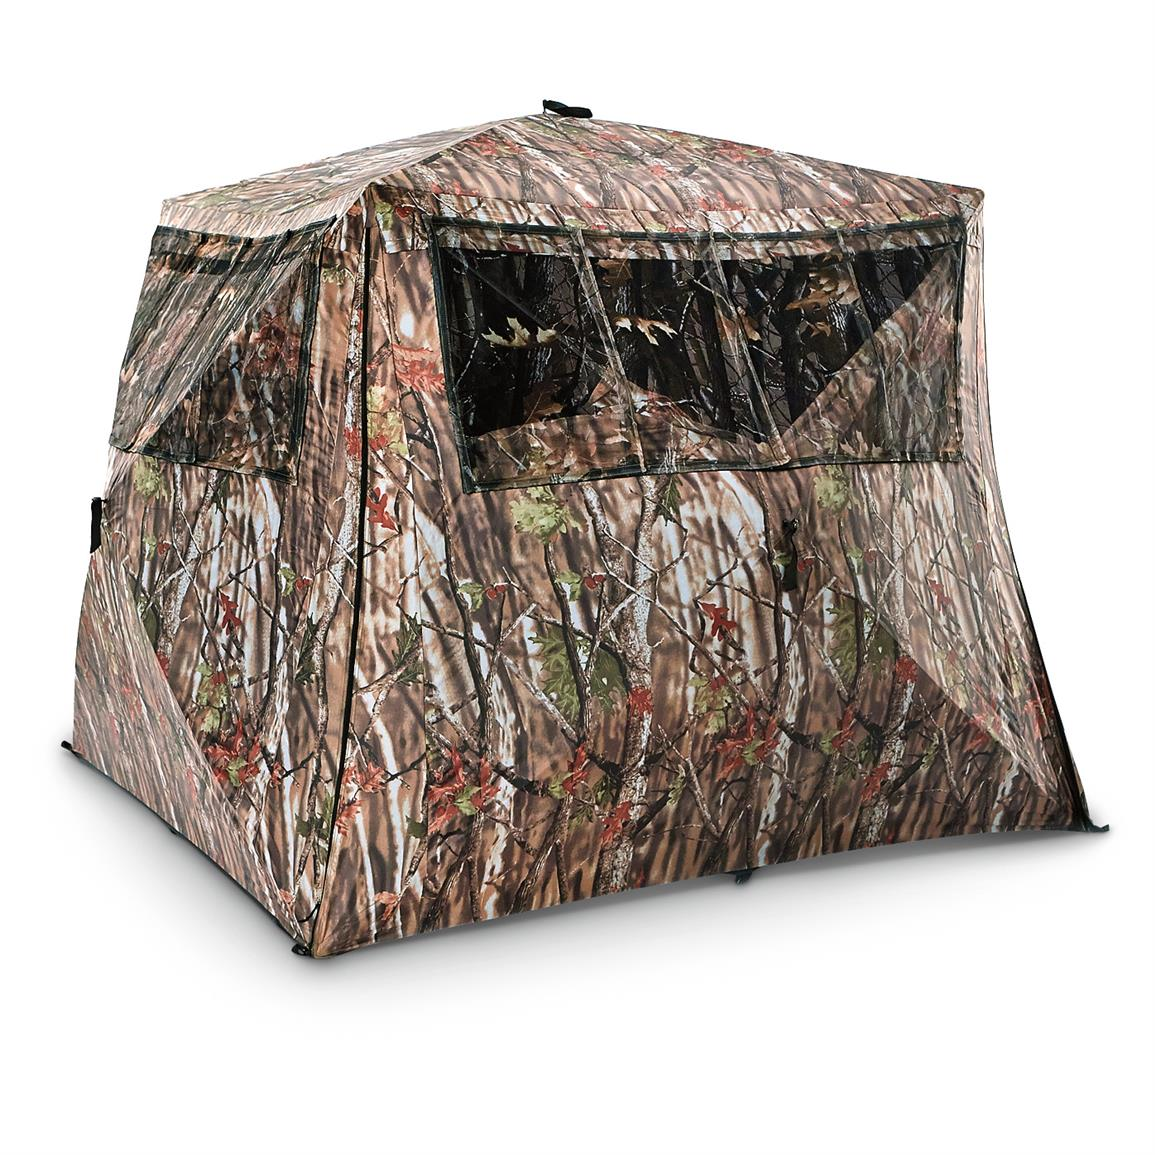 Guide Gear Camo Flare Out 5-Hub Ground Blind • Bottom flares out for 30% more room